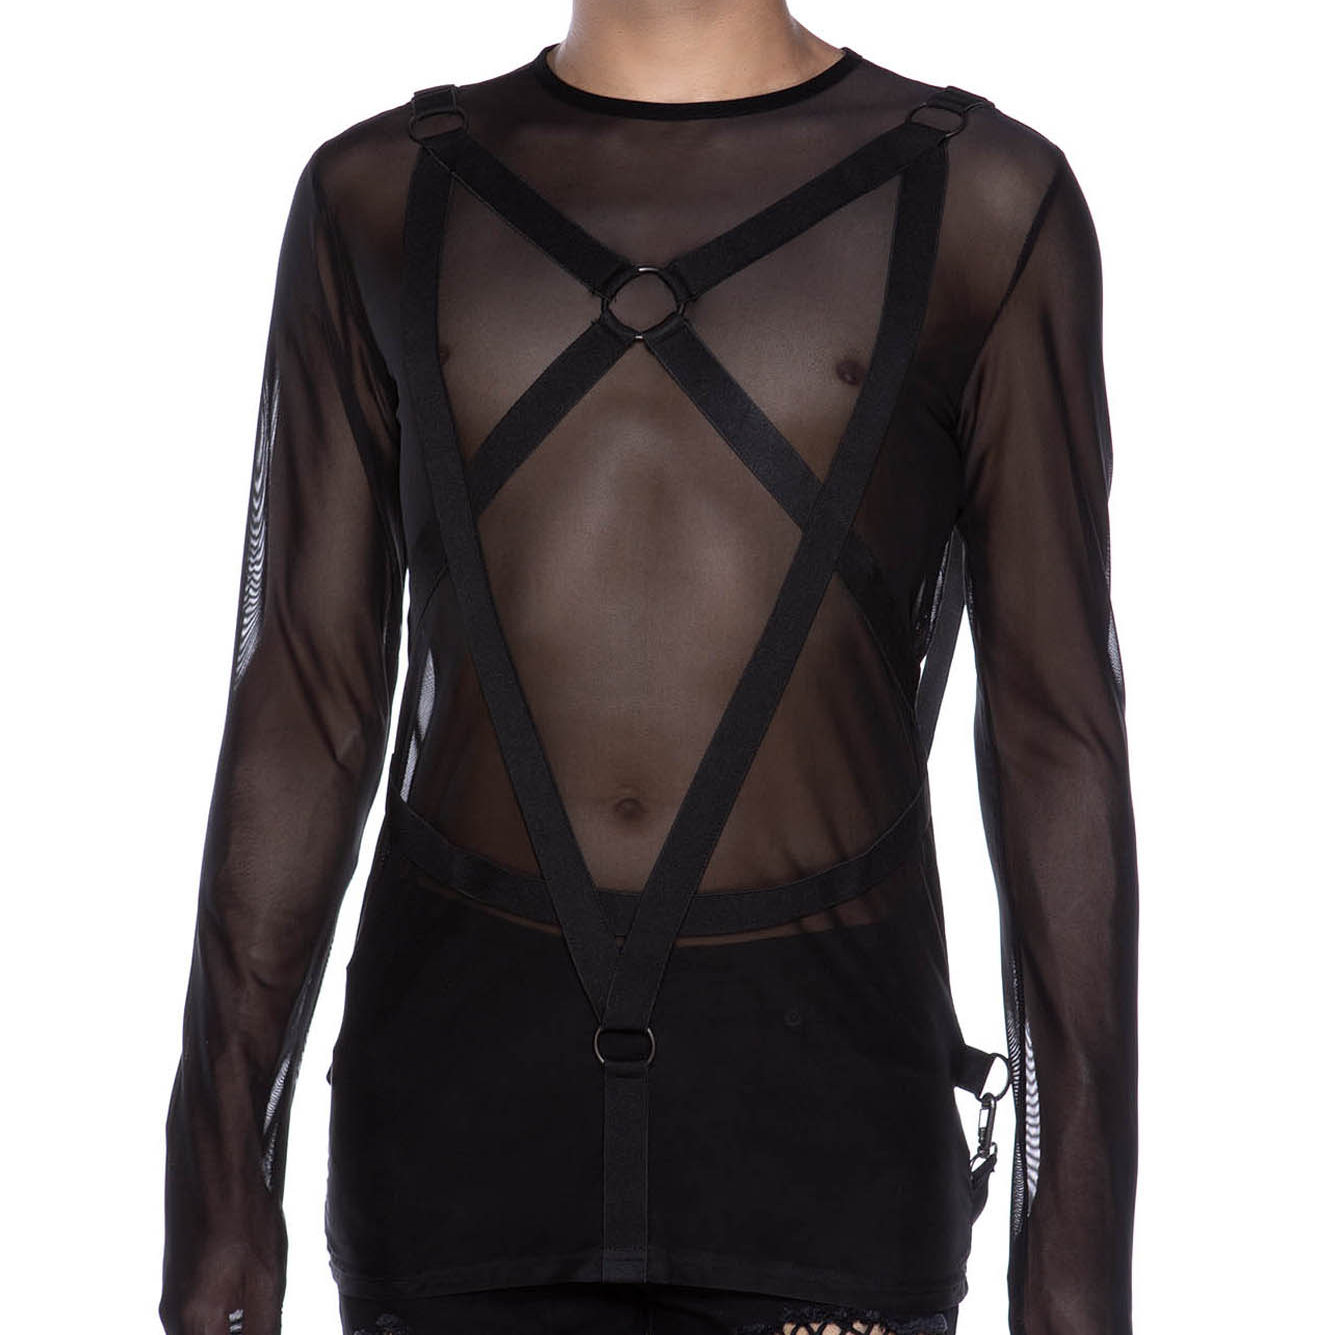 ELYSIUM-LONG-SLEEVE-FISHNET-TOP-B